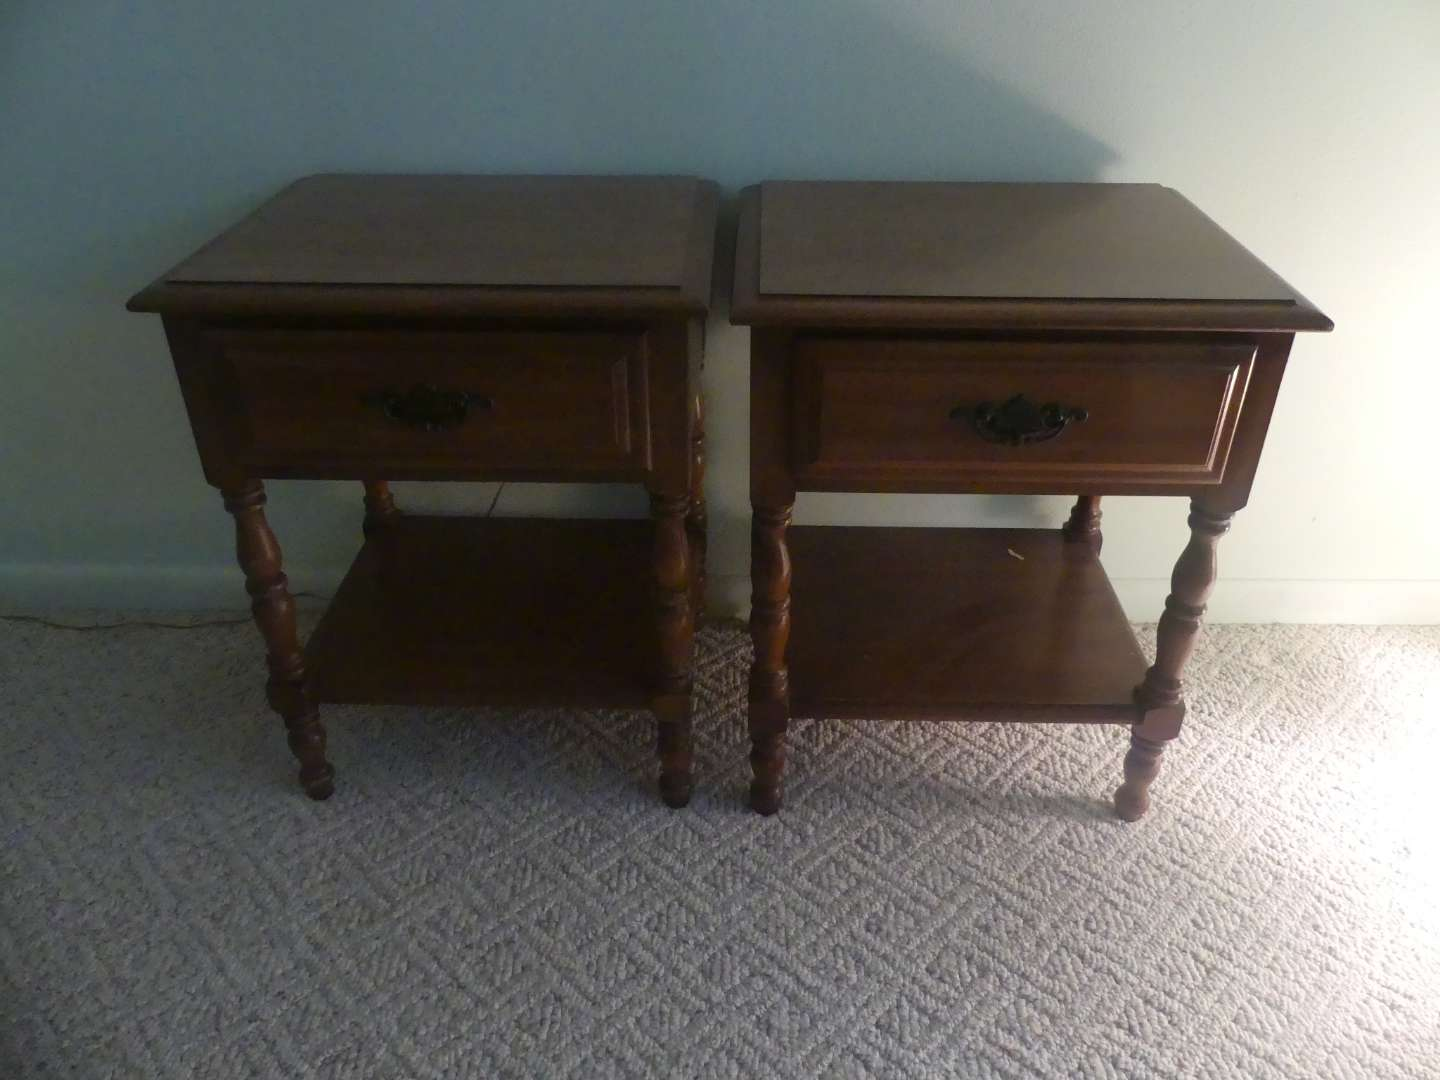 Lot #80 Pair of Bedside Tables